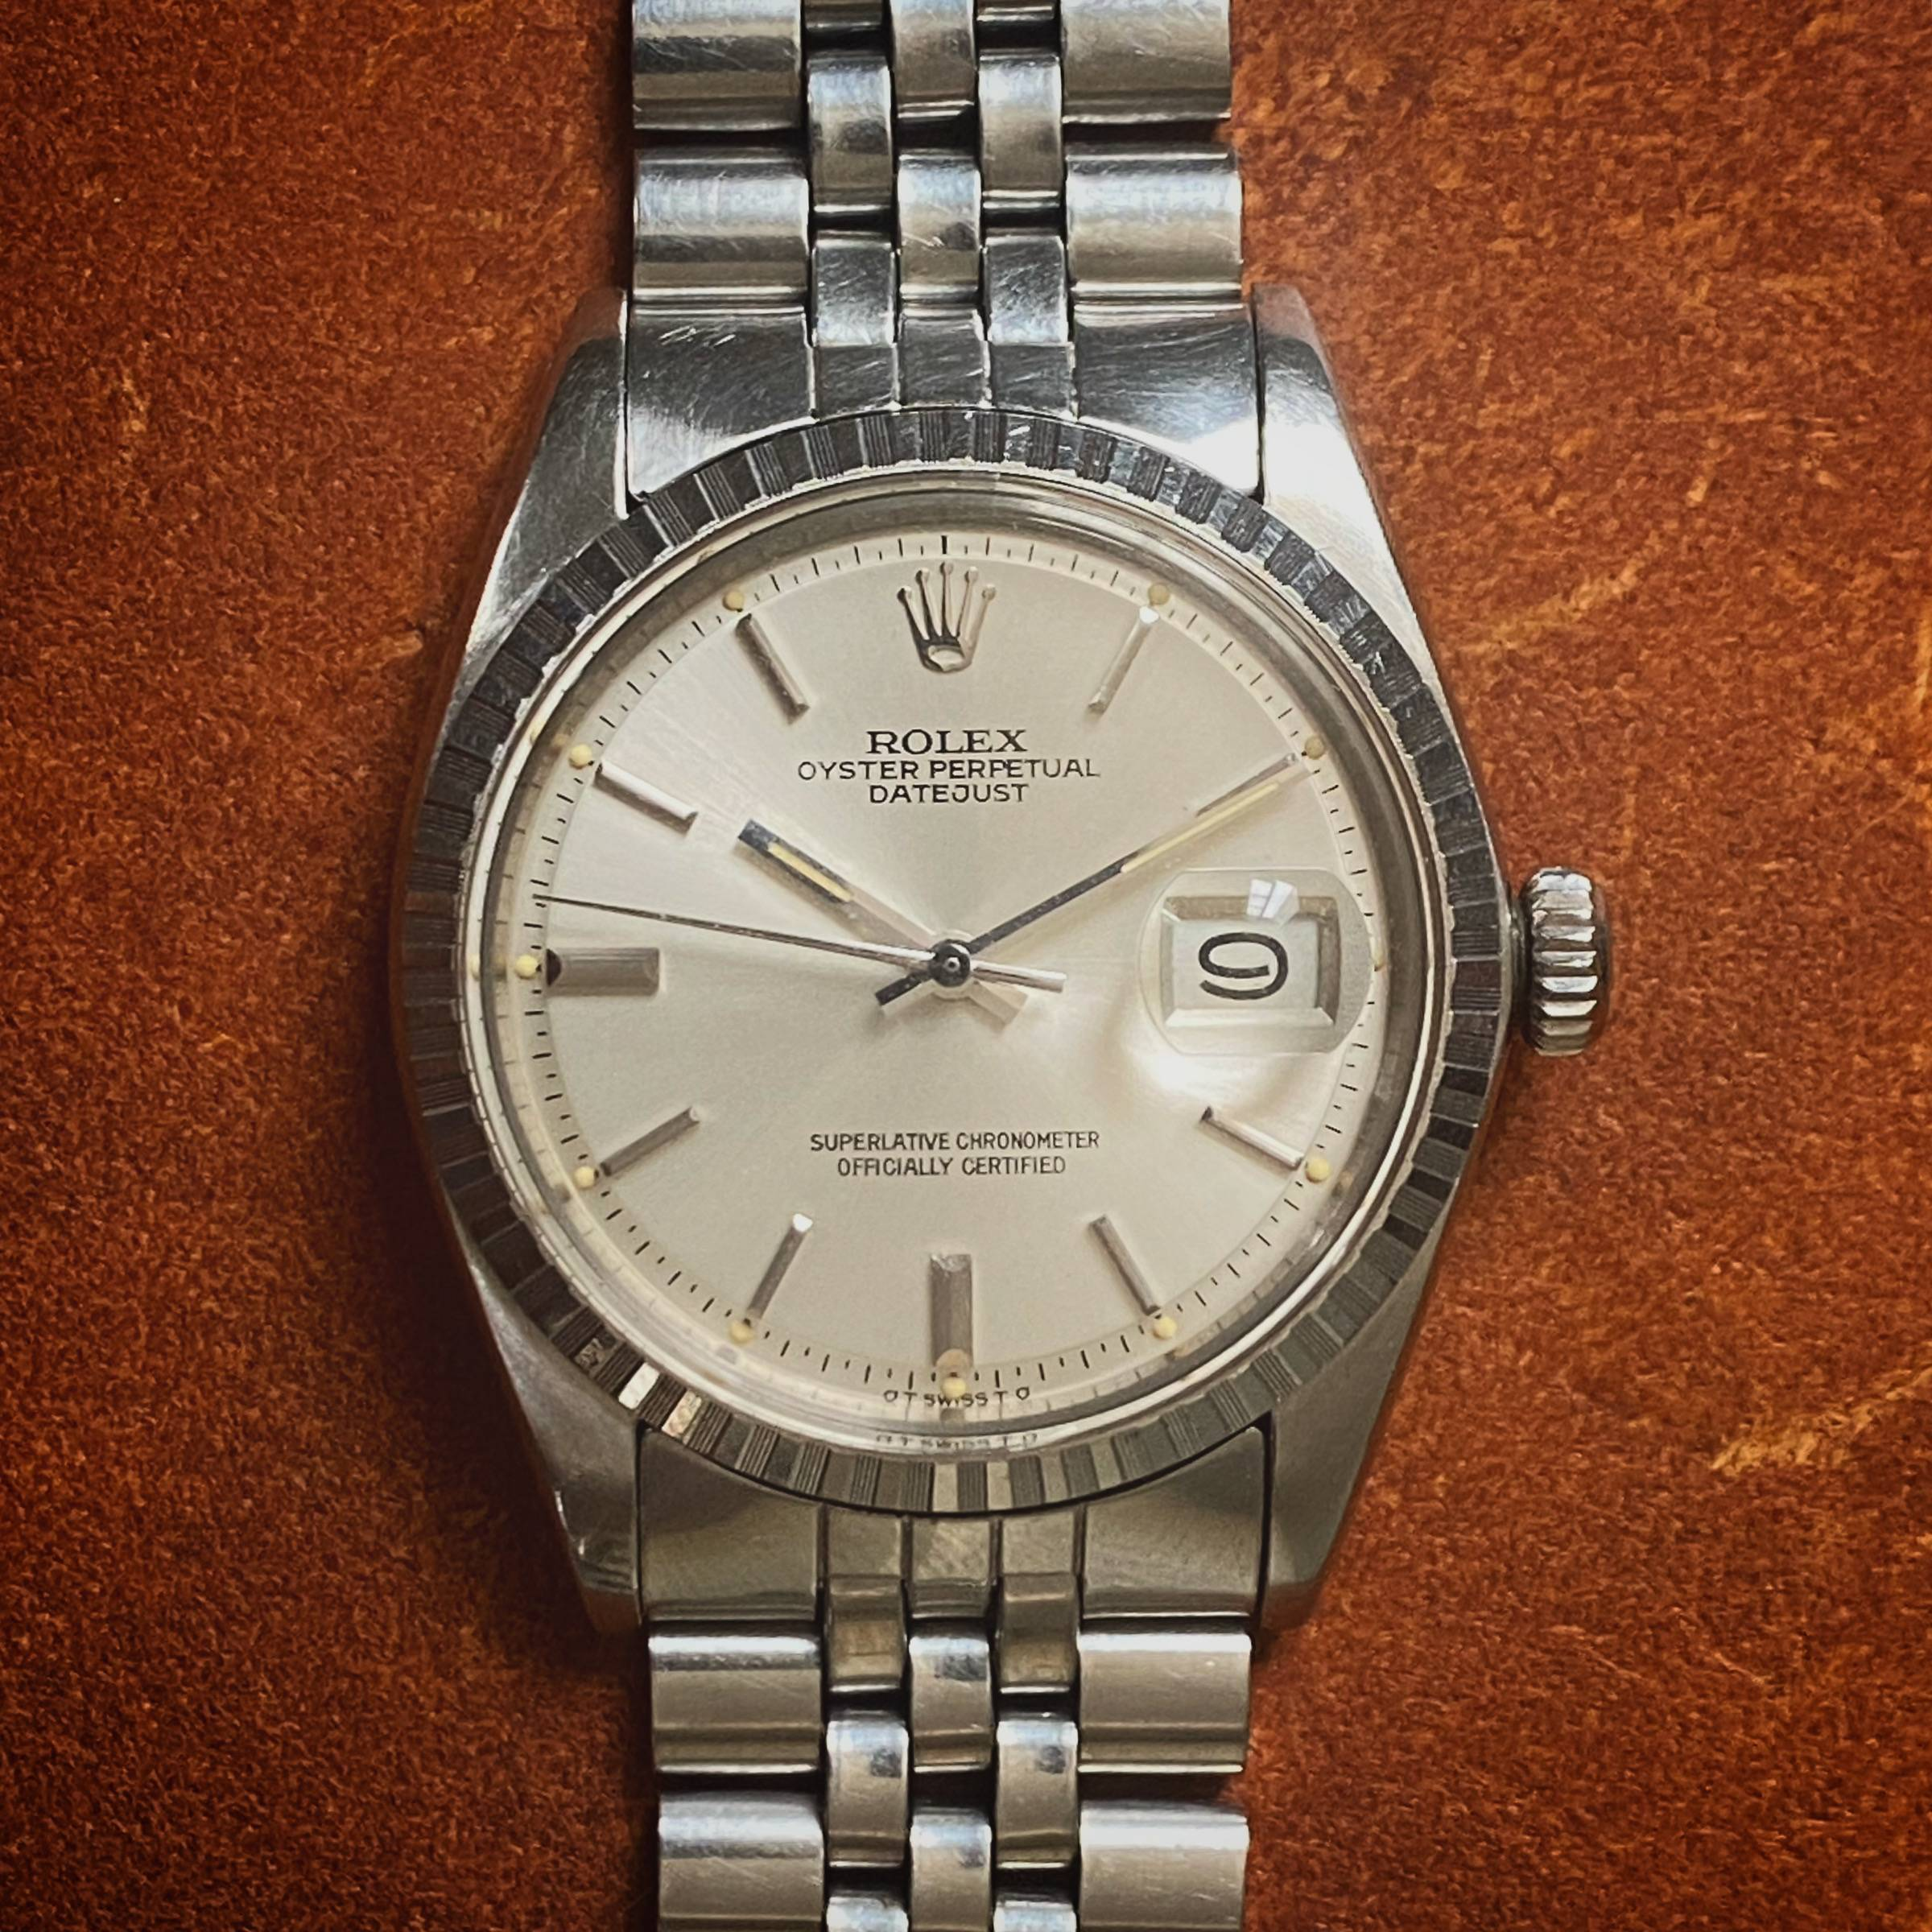 ROLEX OYSTER PERPETUAL DATEJUST SIGMA DIAL-1